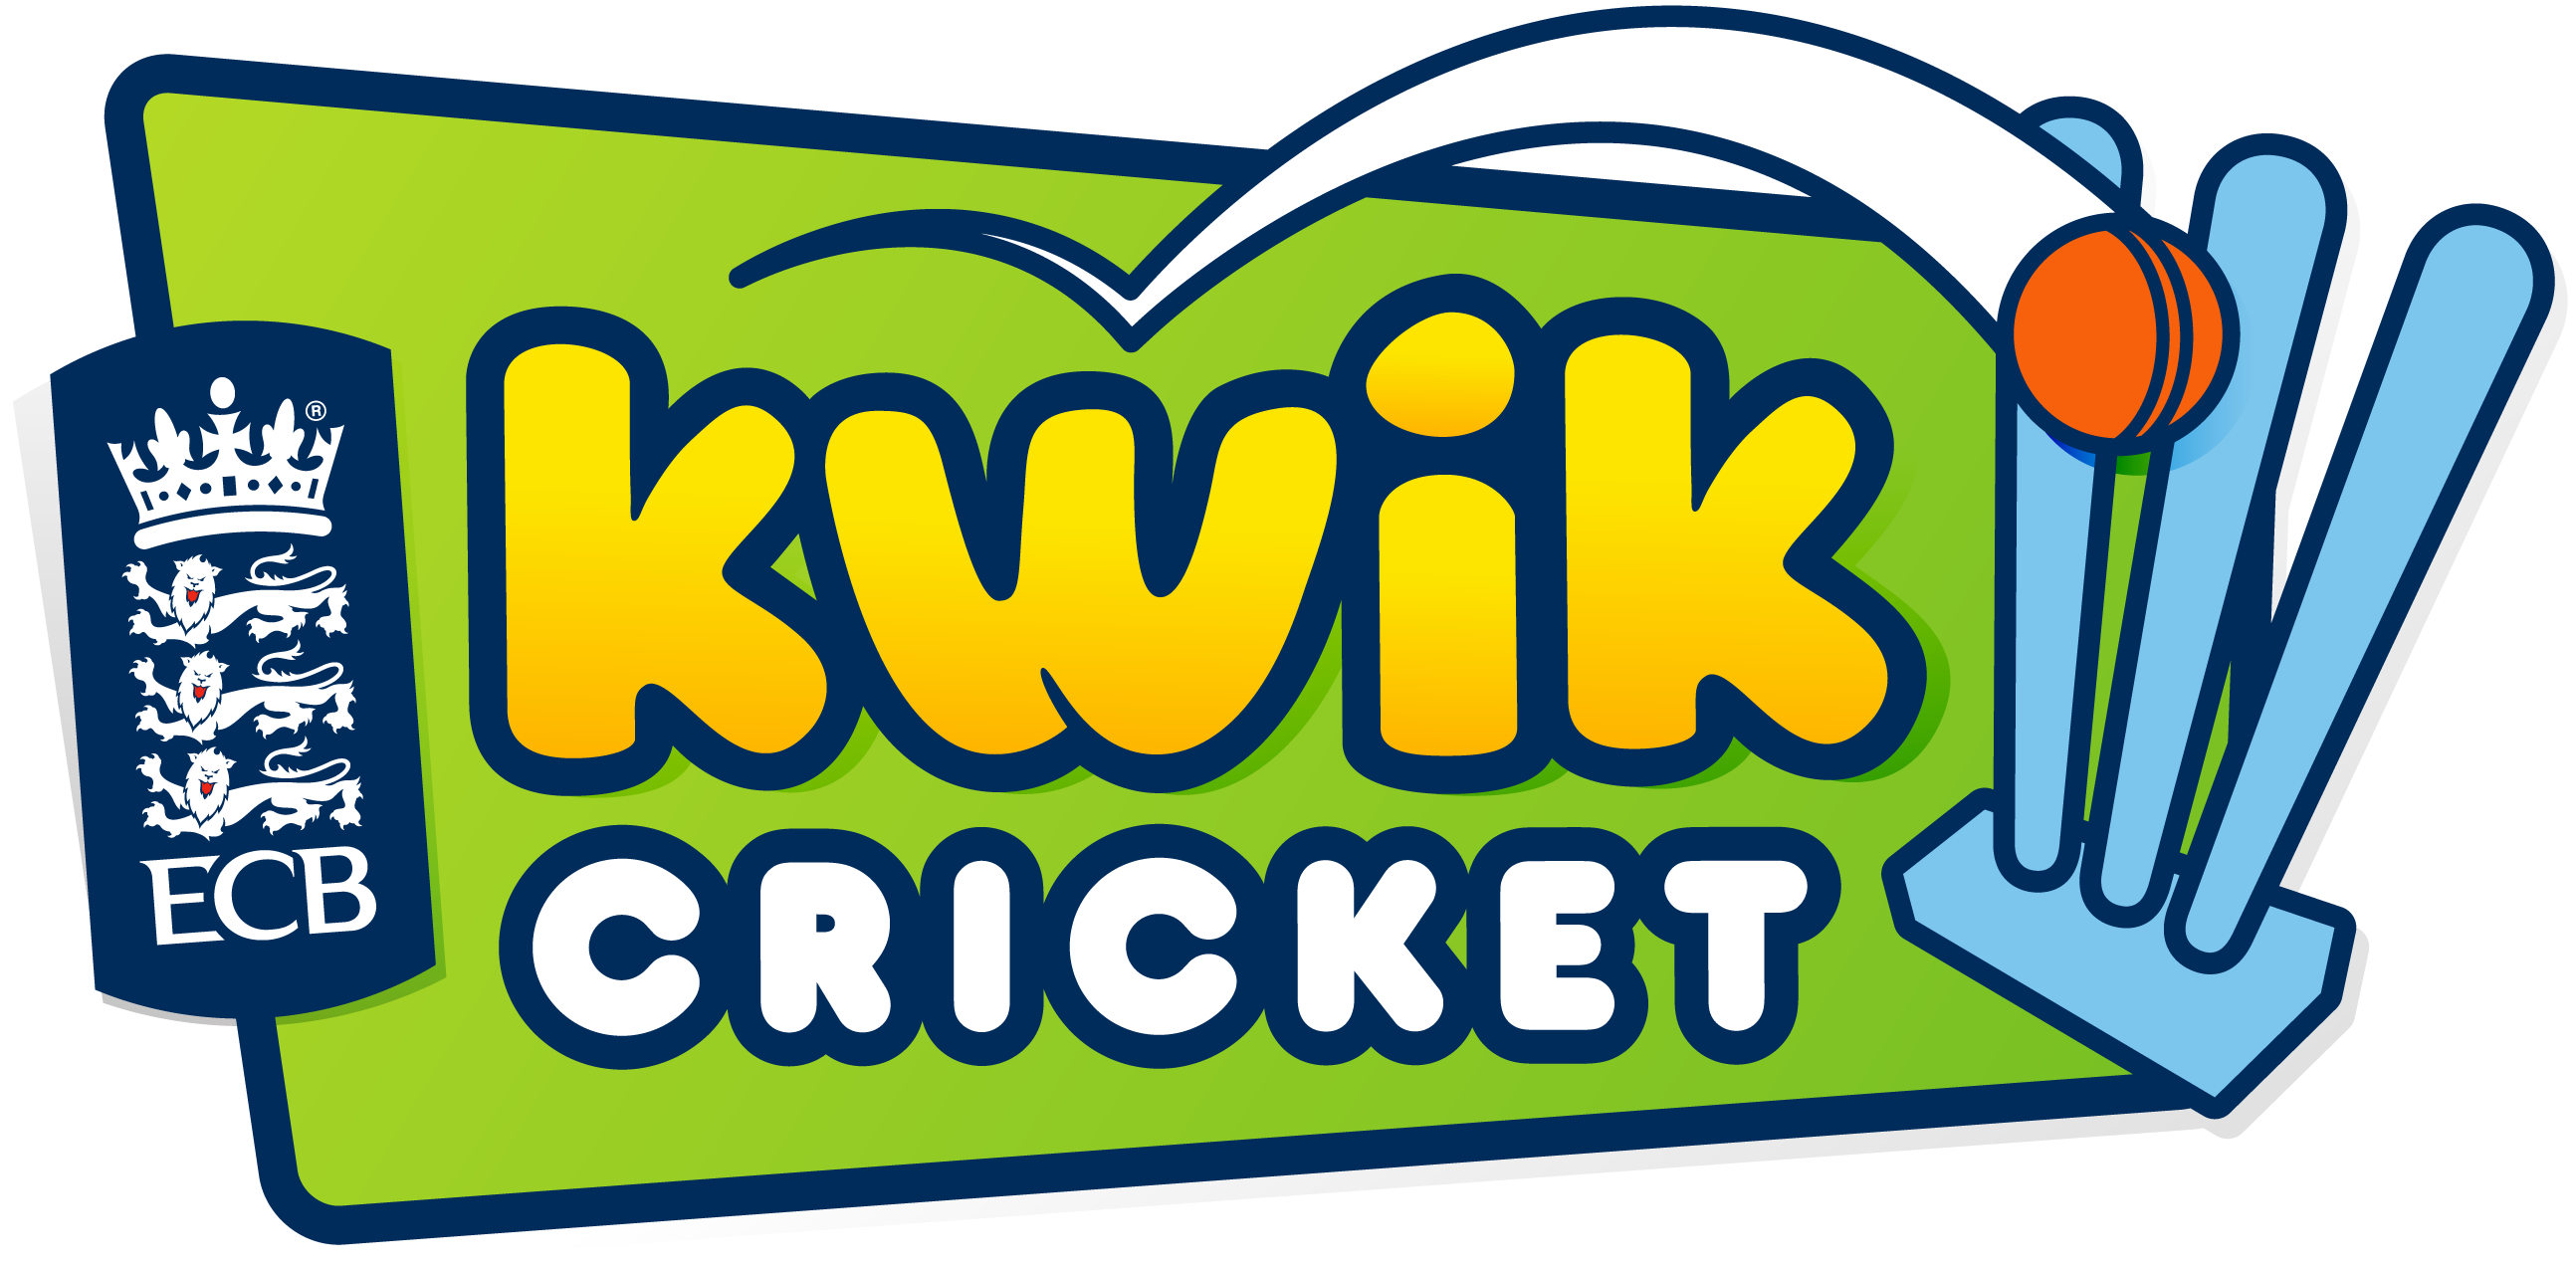 Wiltshire schools ready to compete in ECB Year 6 Kwik Cricket.